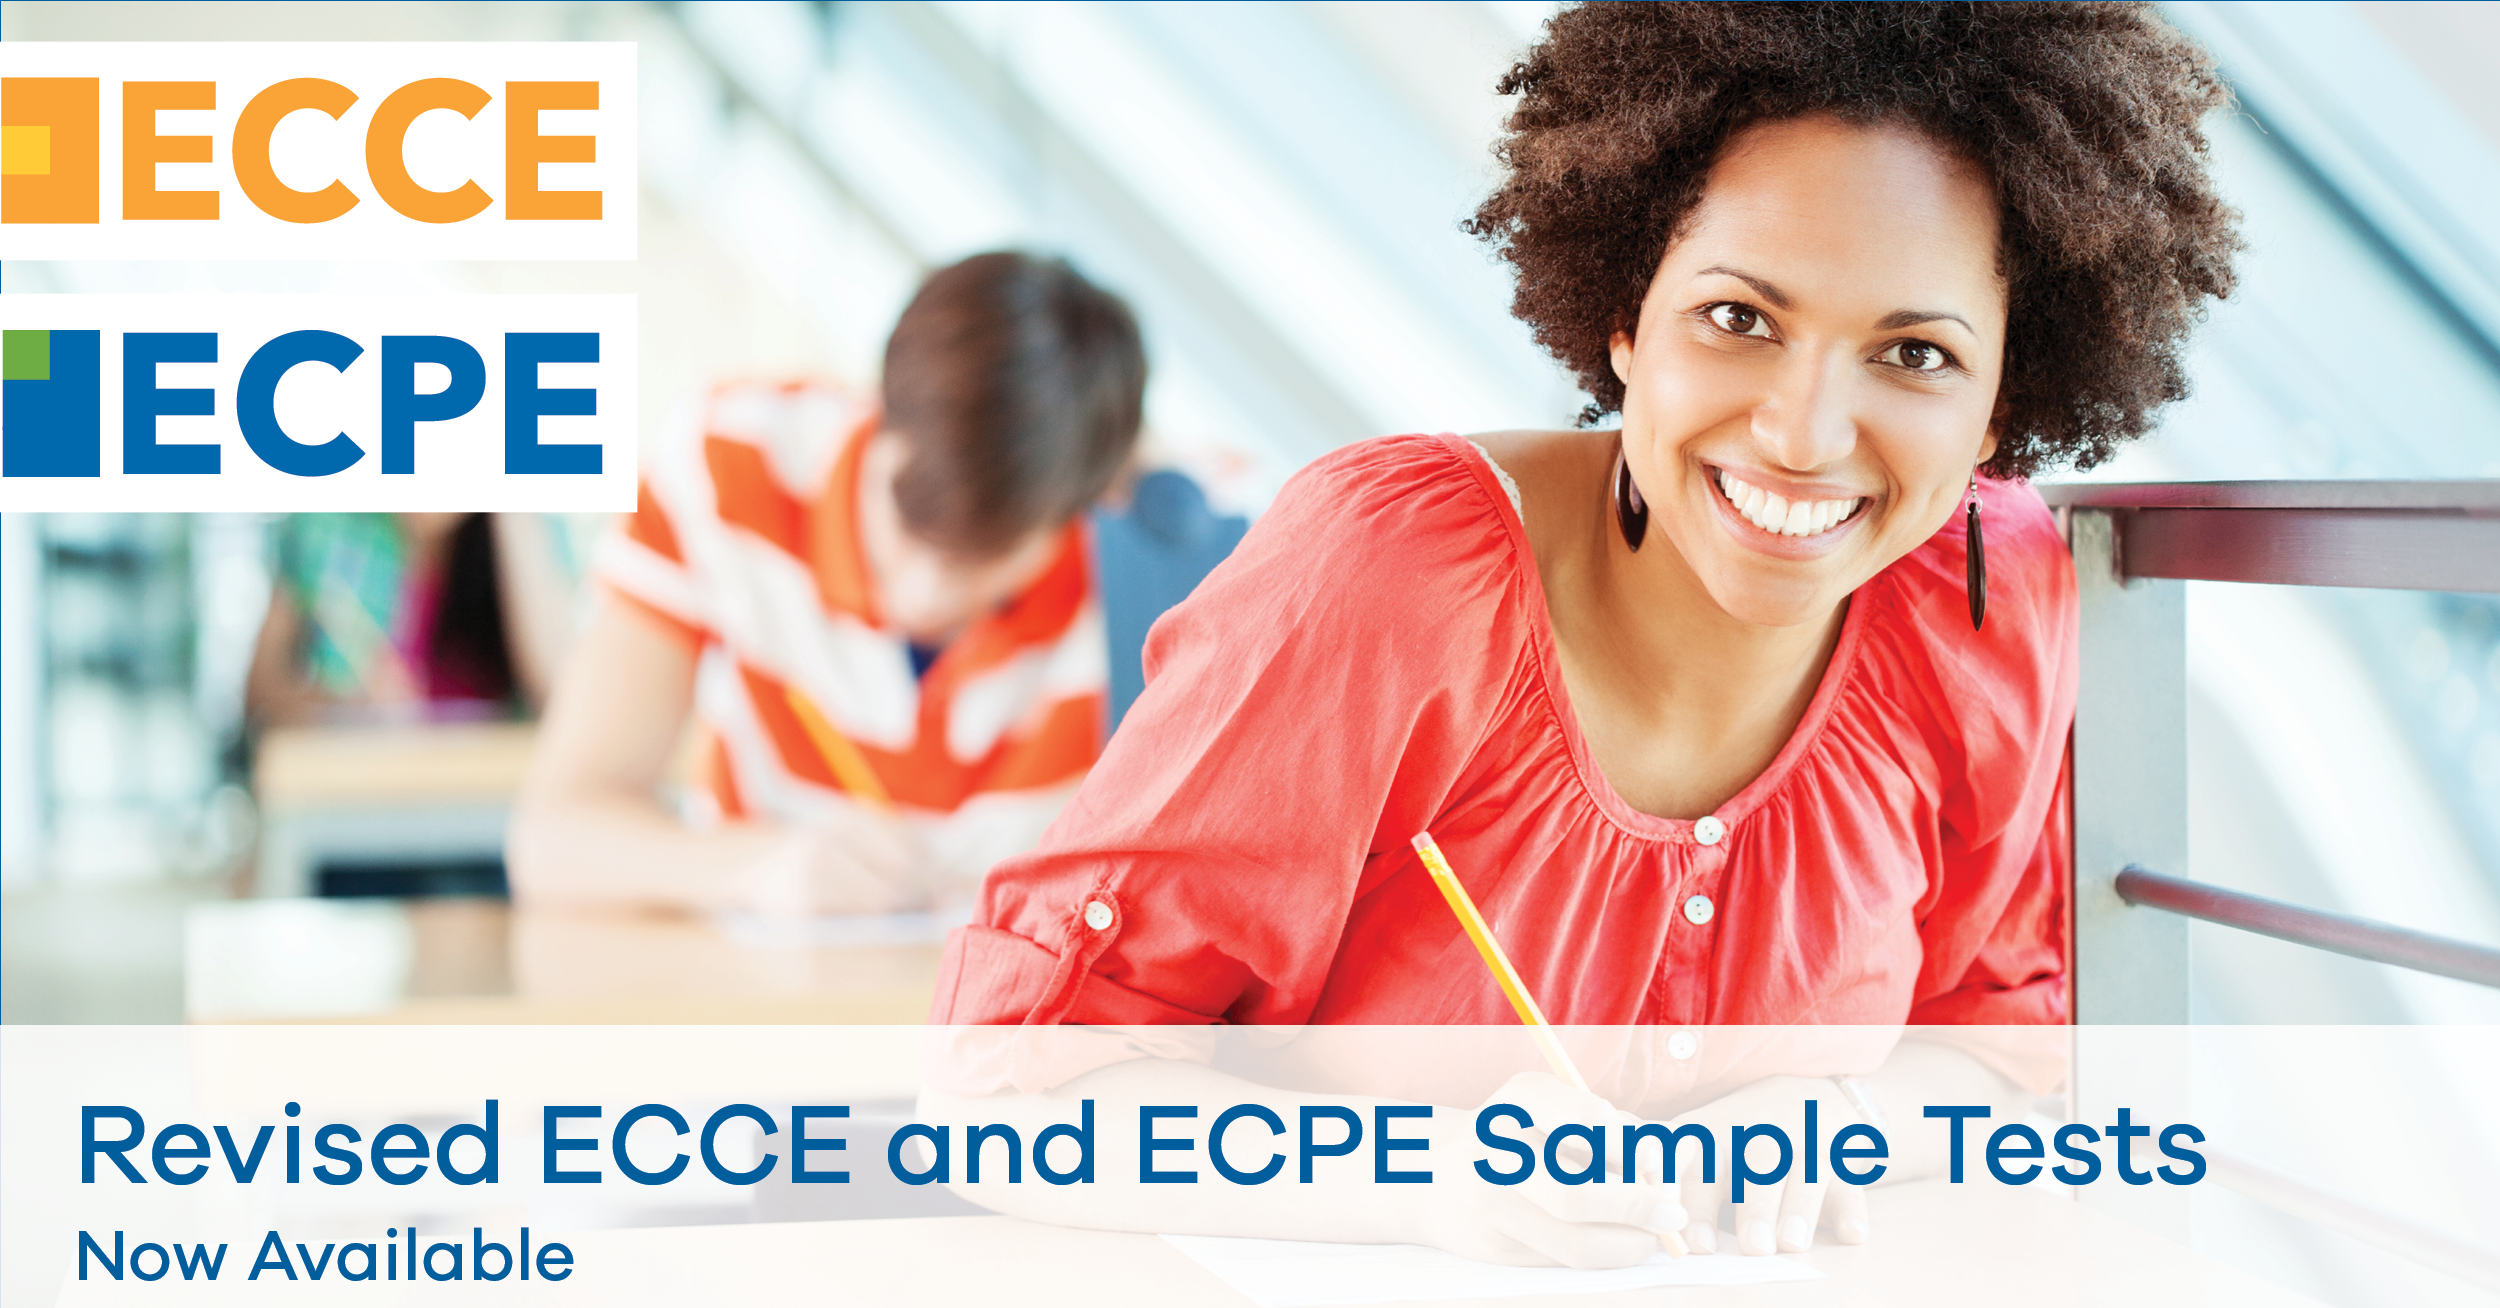 Sample Tests for 2021 Revision of ECCE and ECPE Now Available